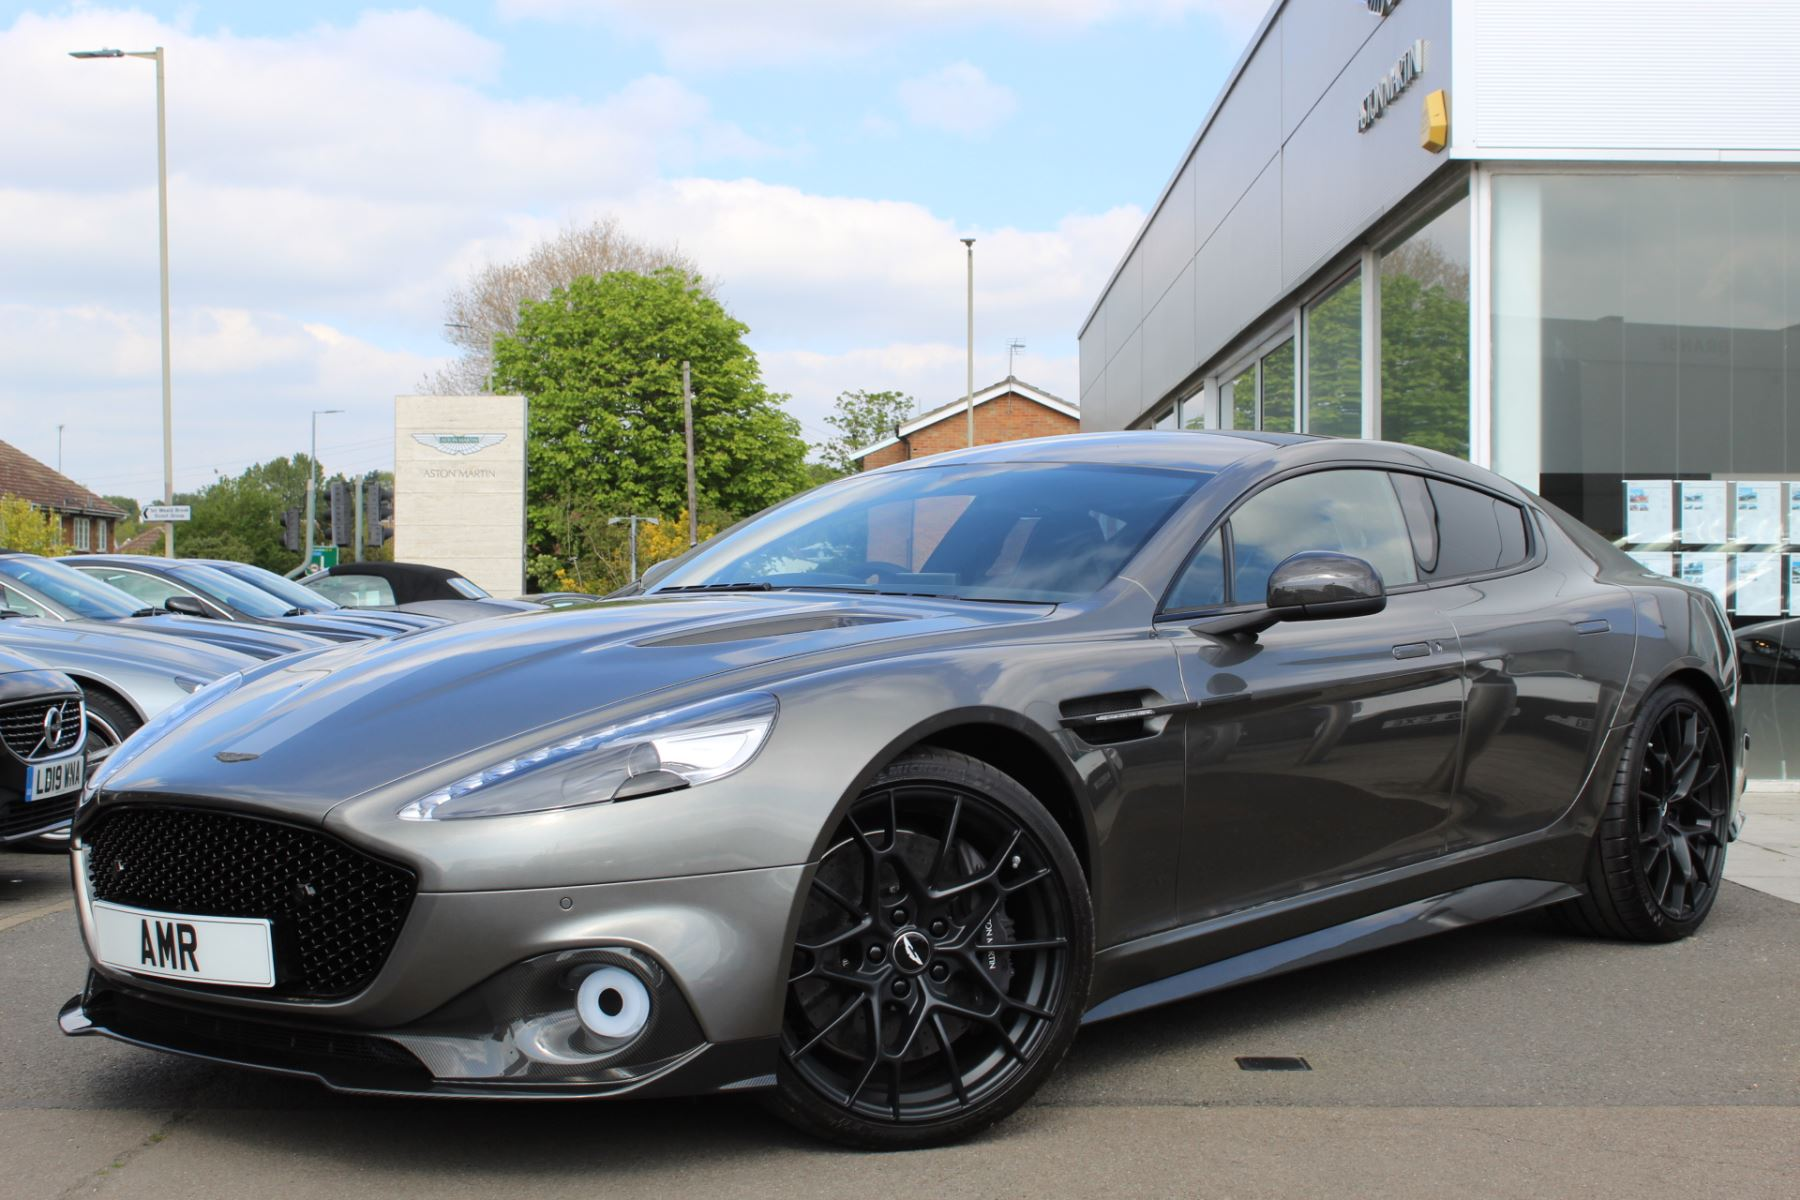 Aston Martin Rapide S AMR Automatic 4 door Saloon (19MY) image